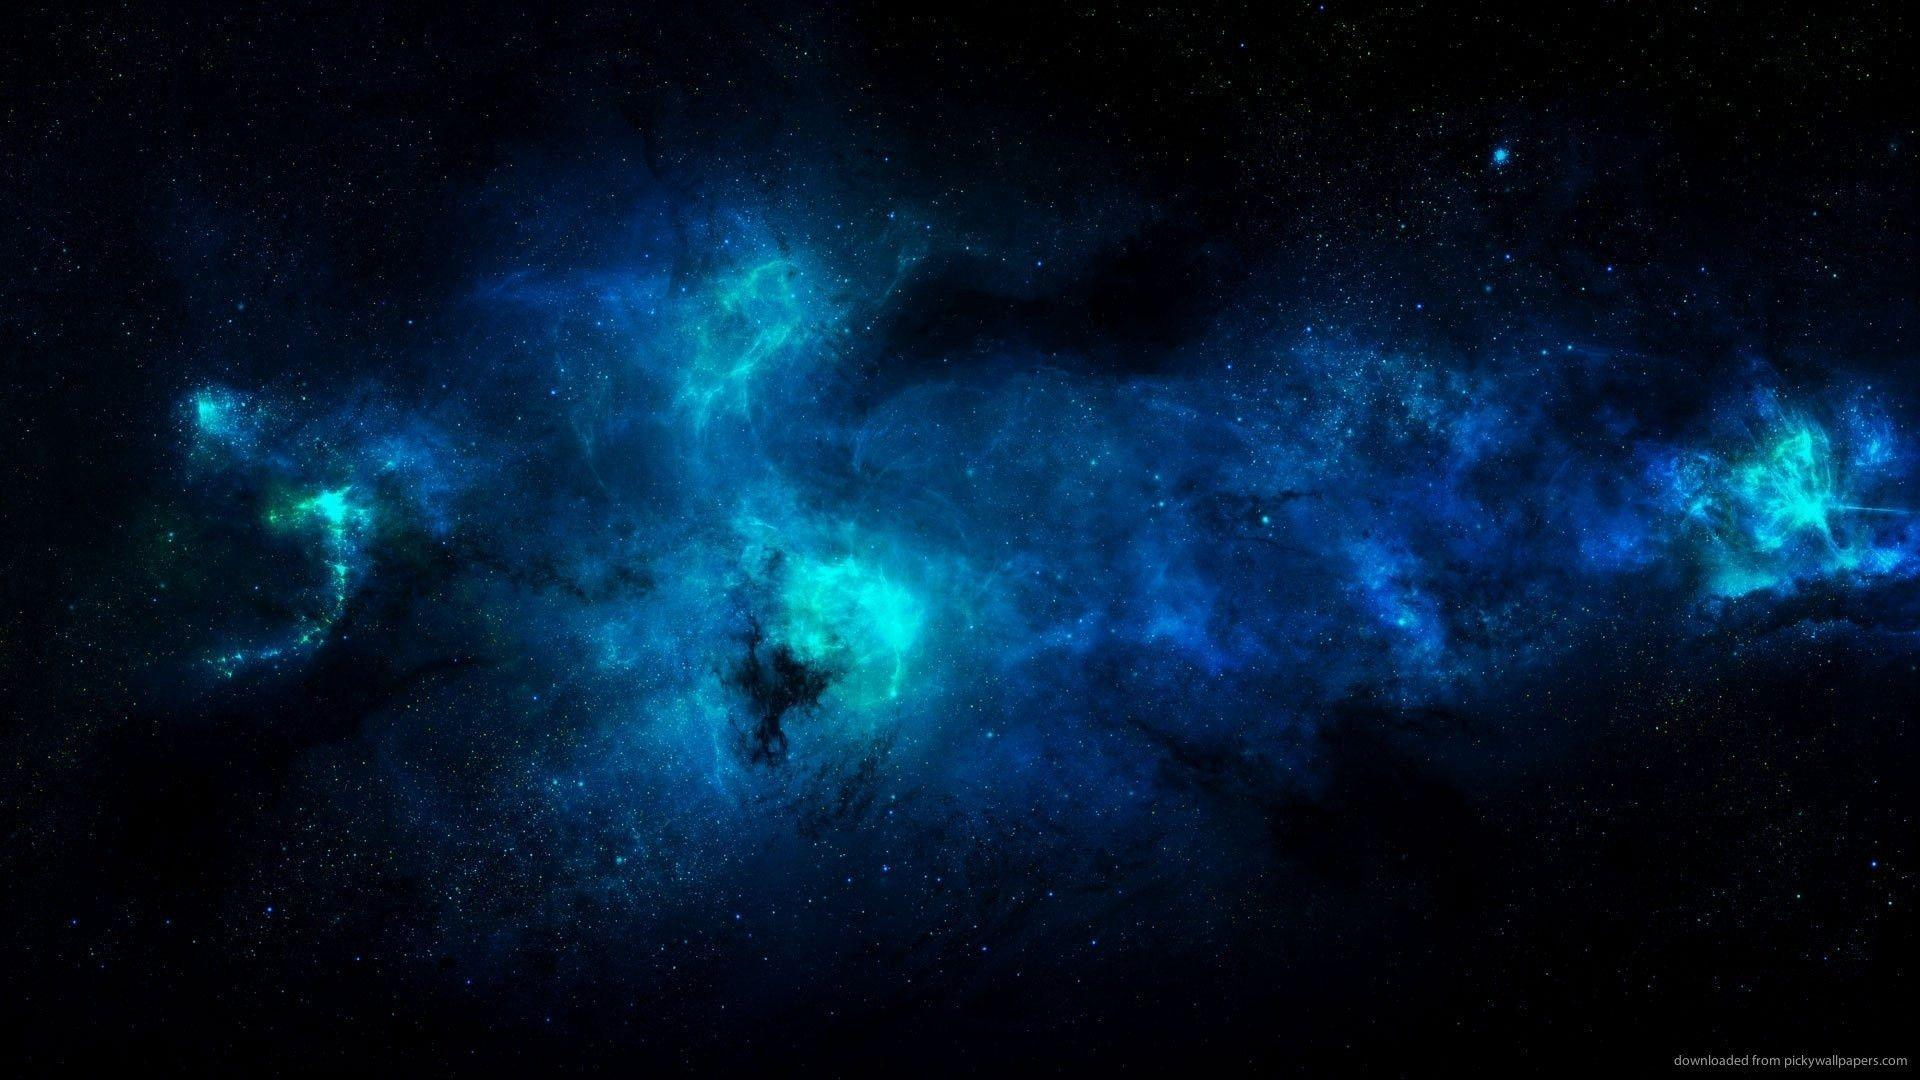 Blue Space Wallpapers For Blackberry Playbook